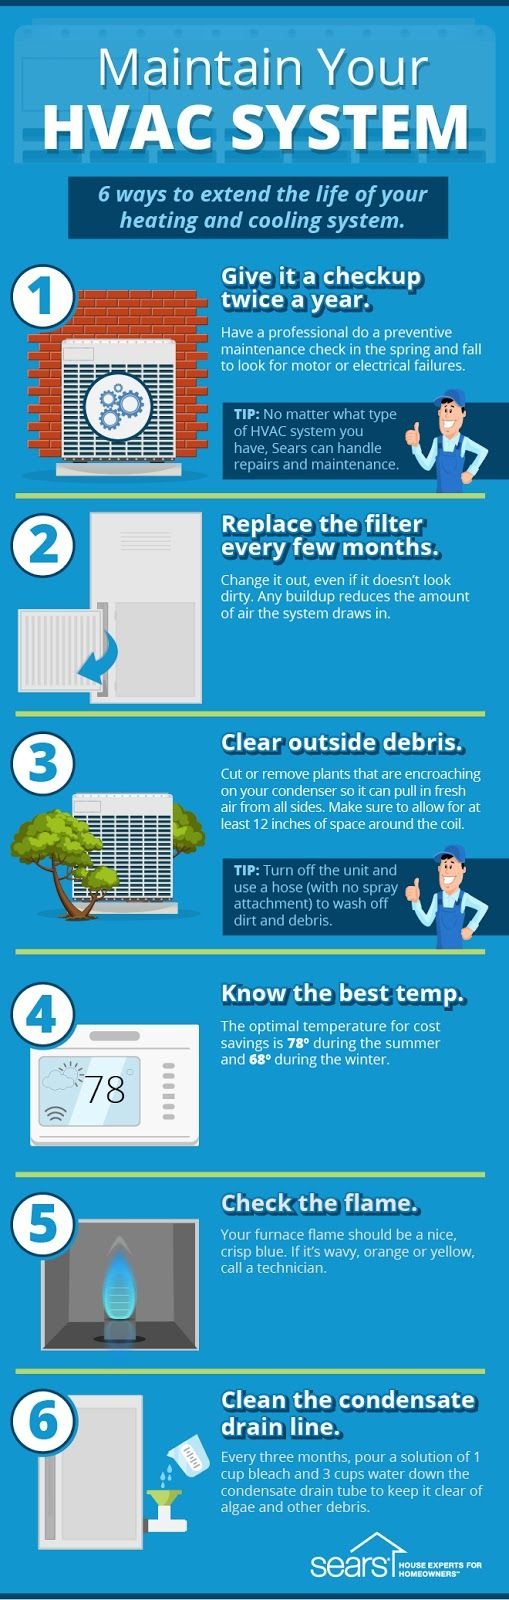 Getting Your HVAC Ready for Summer #ad #houseexperts @searshomeexpert